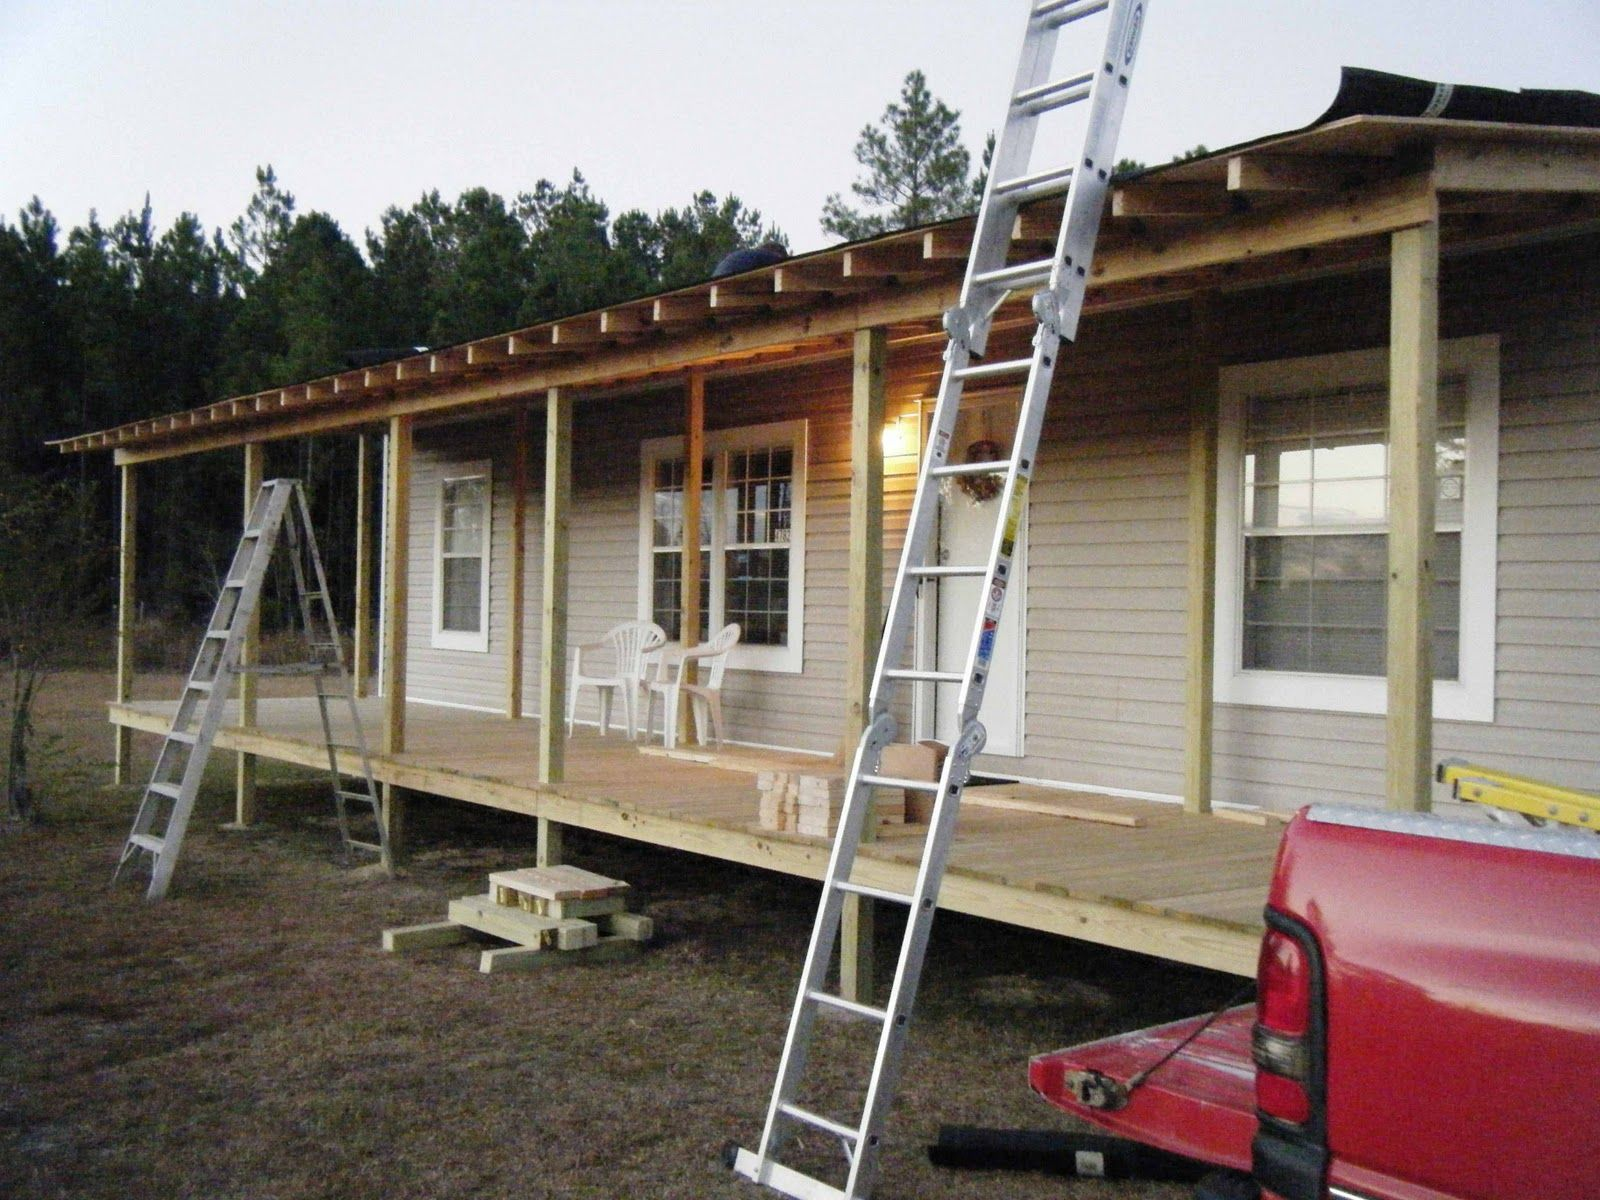 mobile home porches | front porch being built onto double ... on i beam anchor, i beam chart, i beam dolly, i beam crane, i beam art, i beam parts, i beam roller,